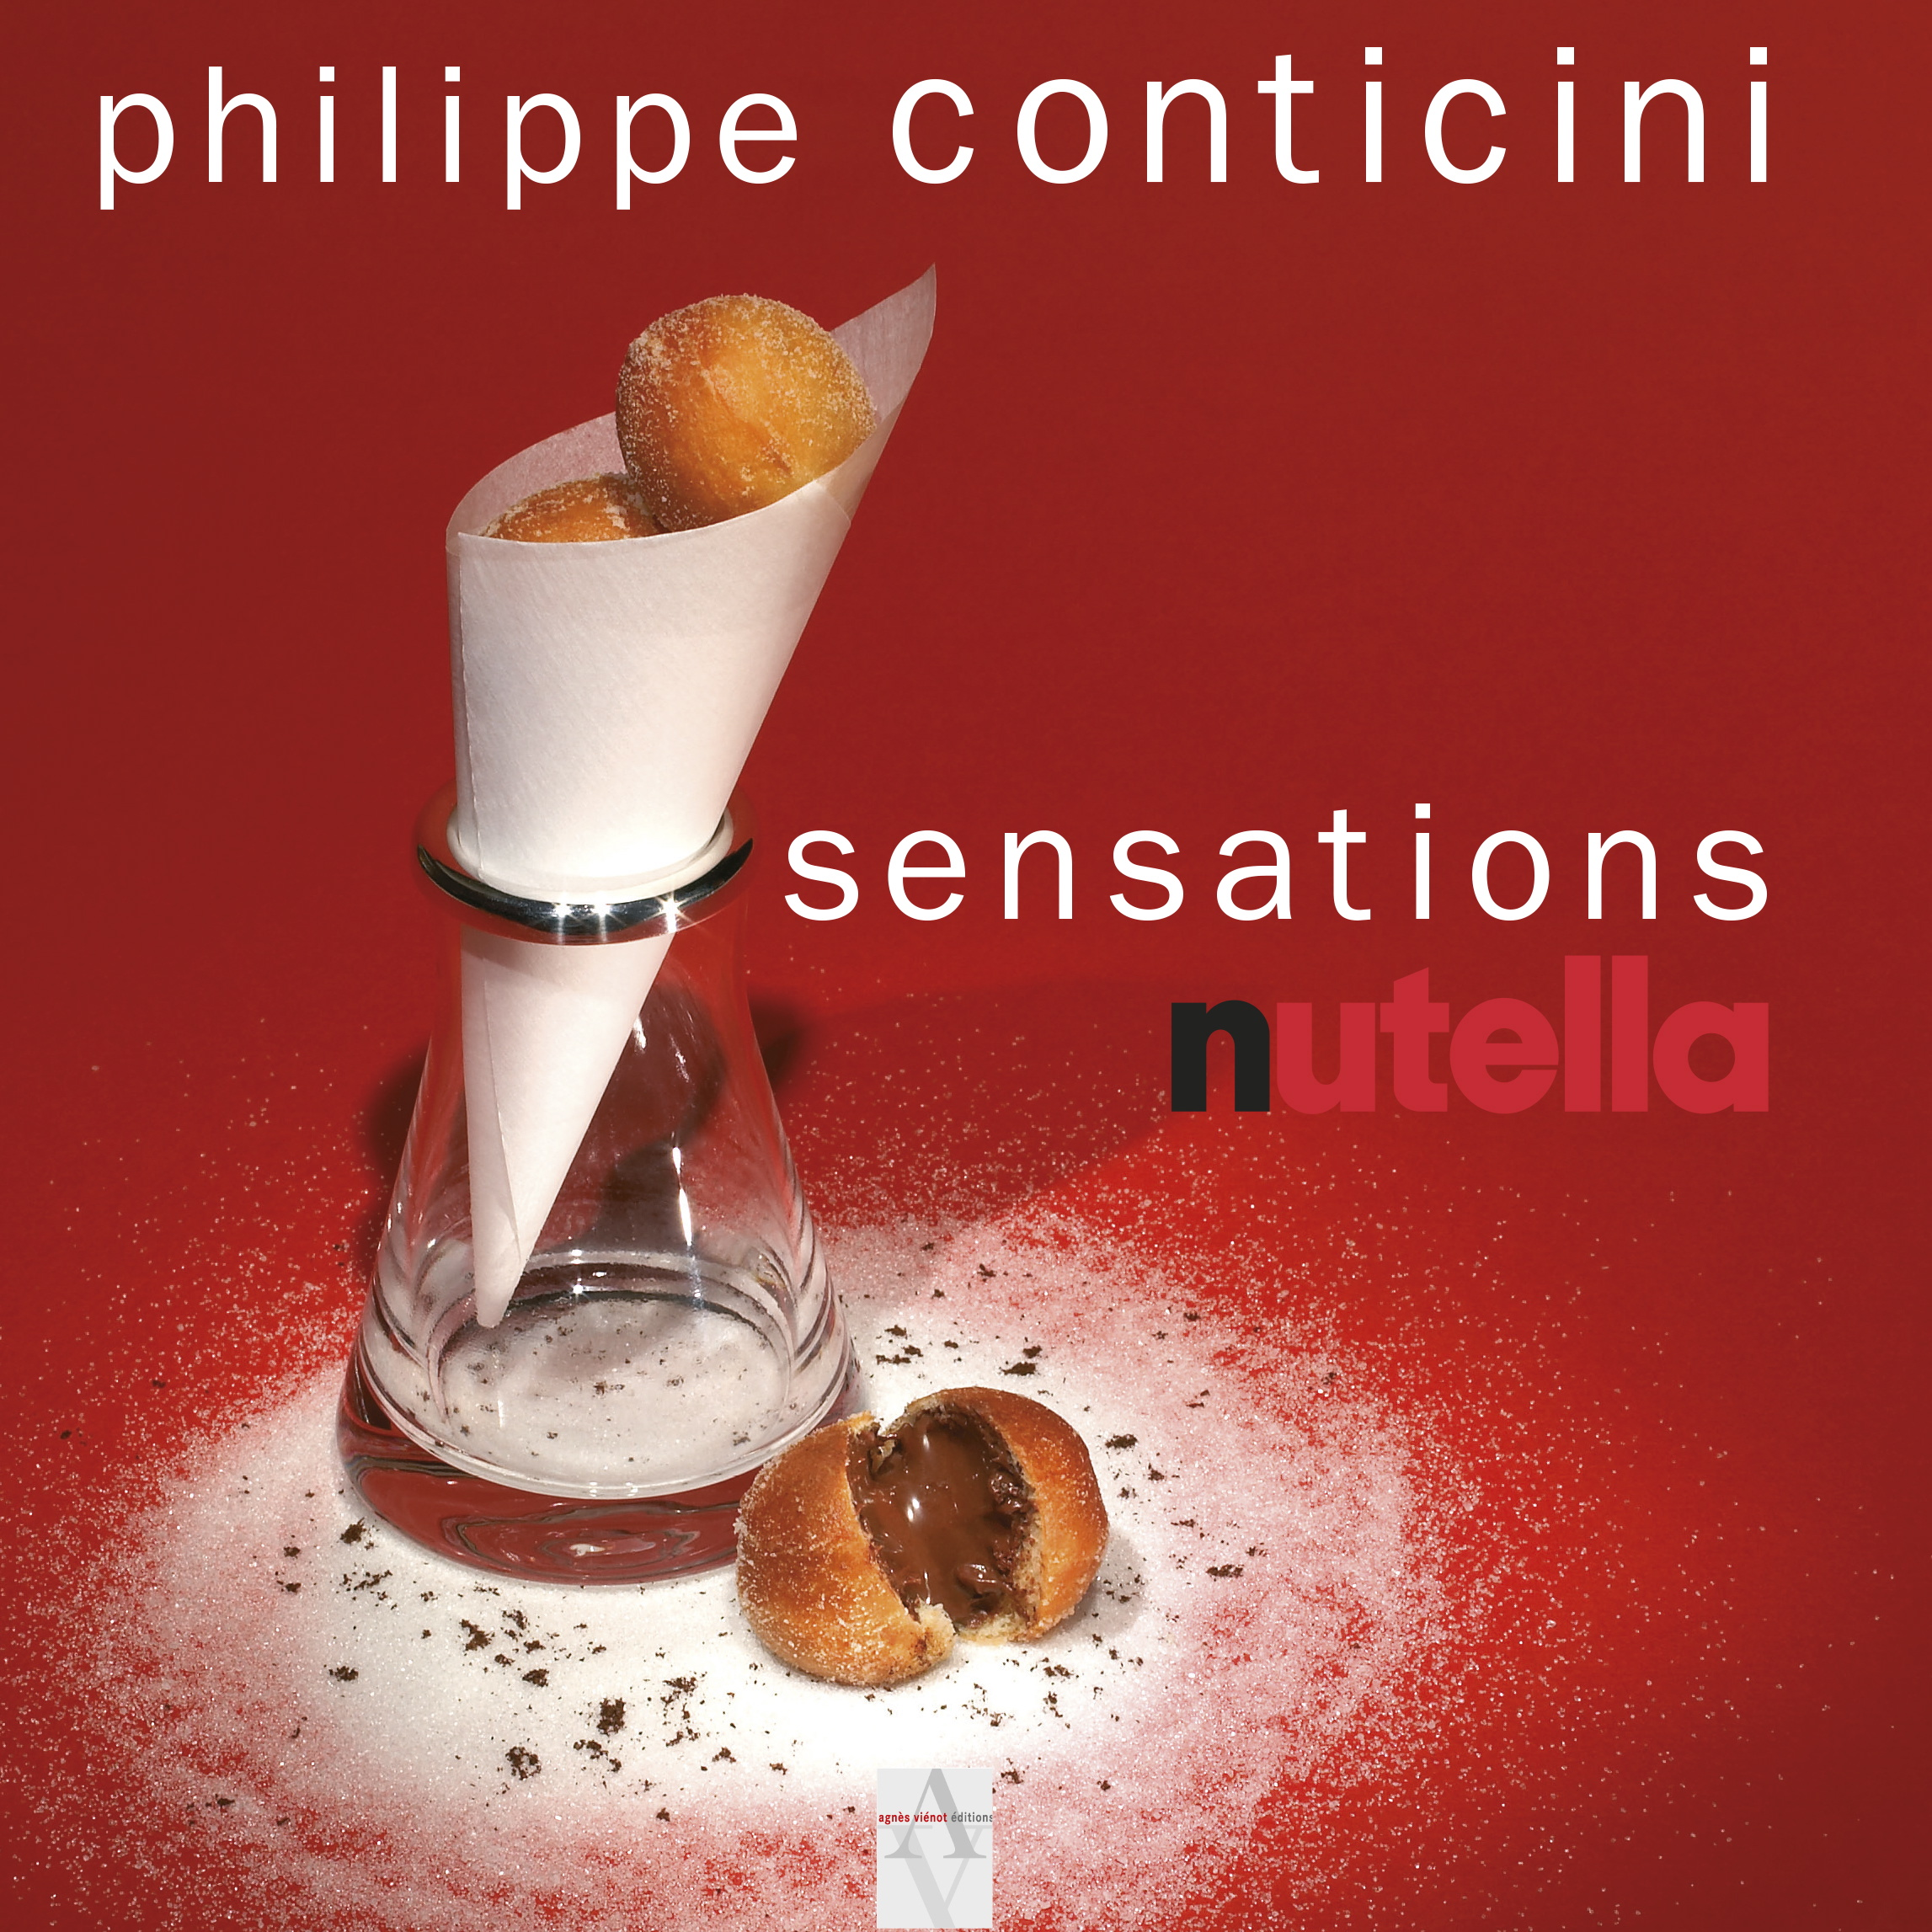 Nutella Sensations recipe book cover